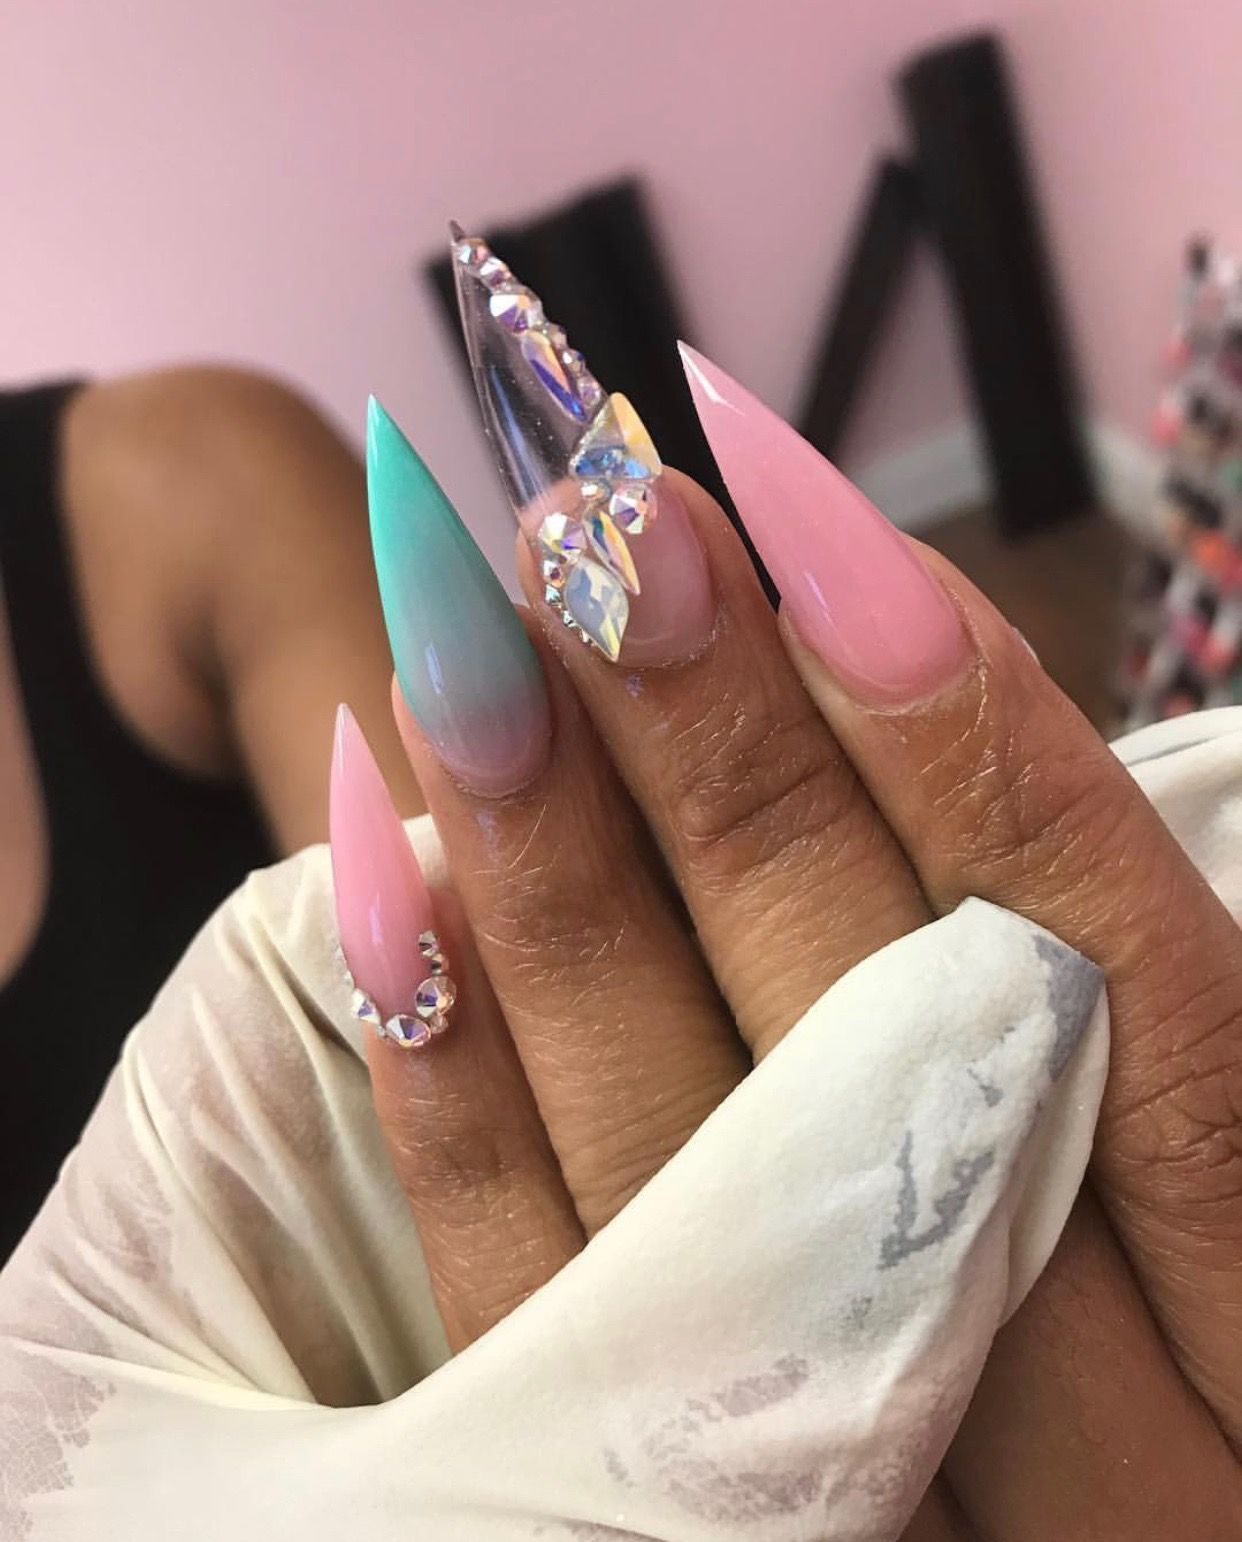 Follow: @Tropic_M for more ❄️ | Bomb Nails in 2019